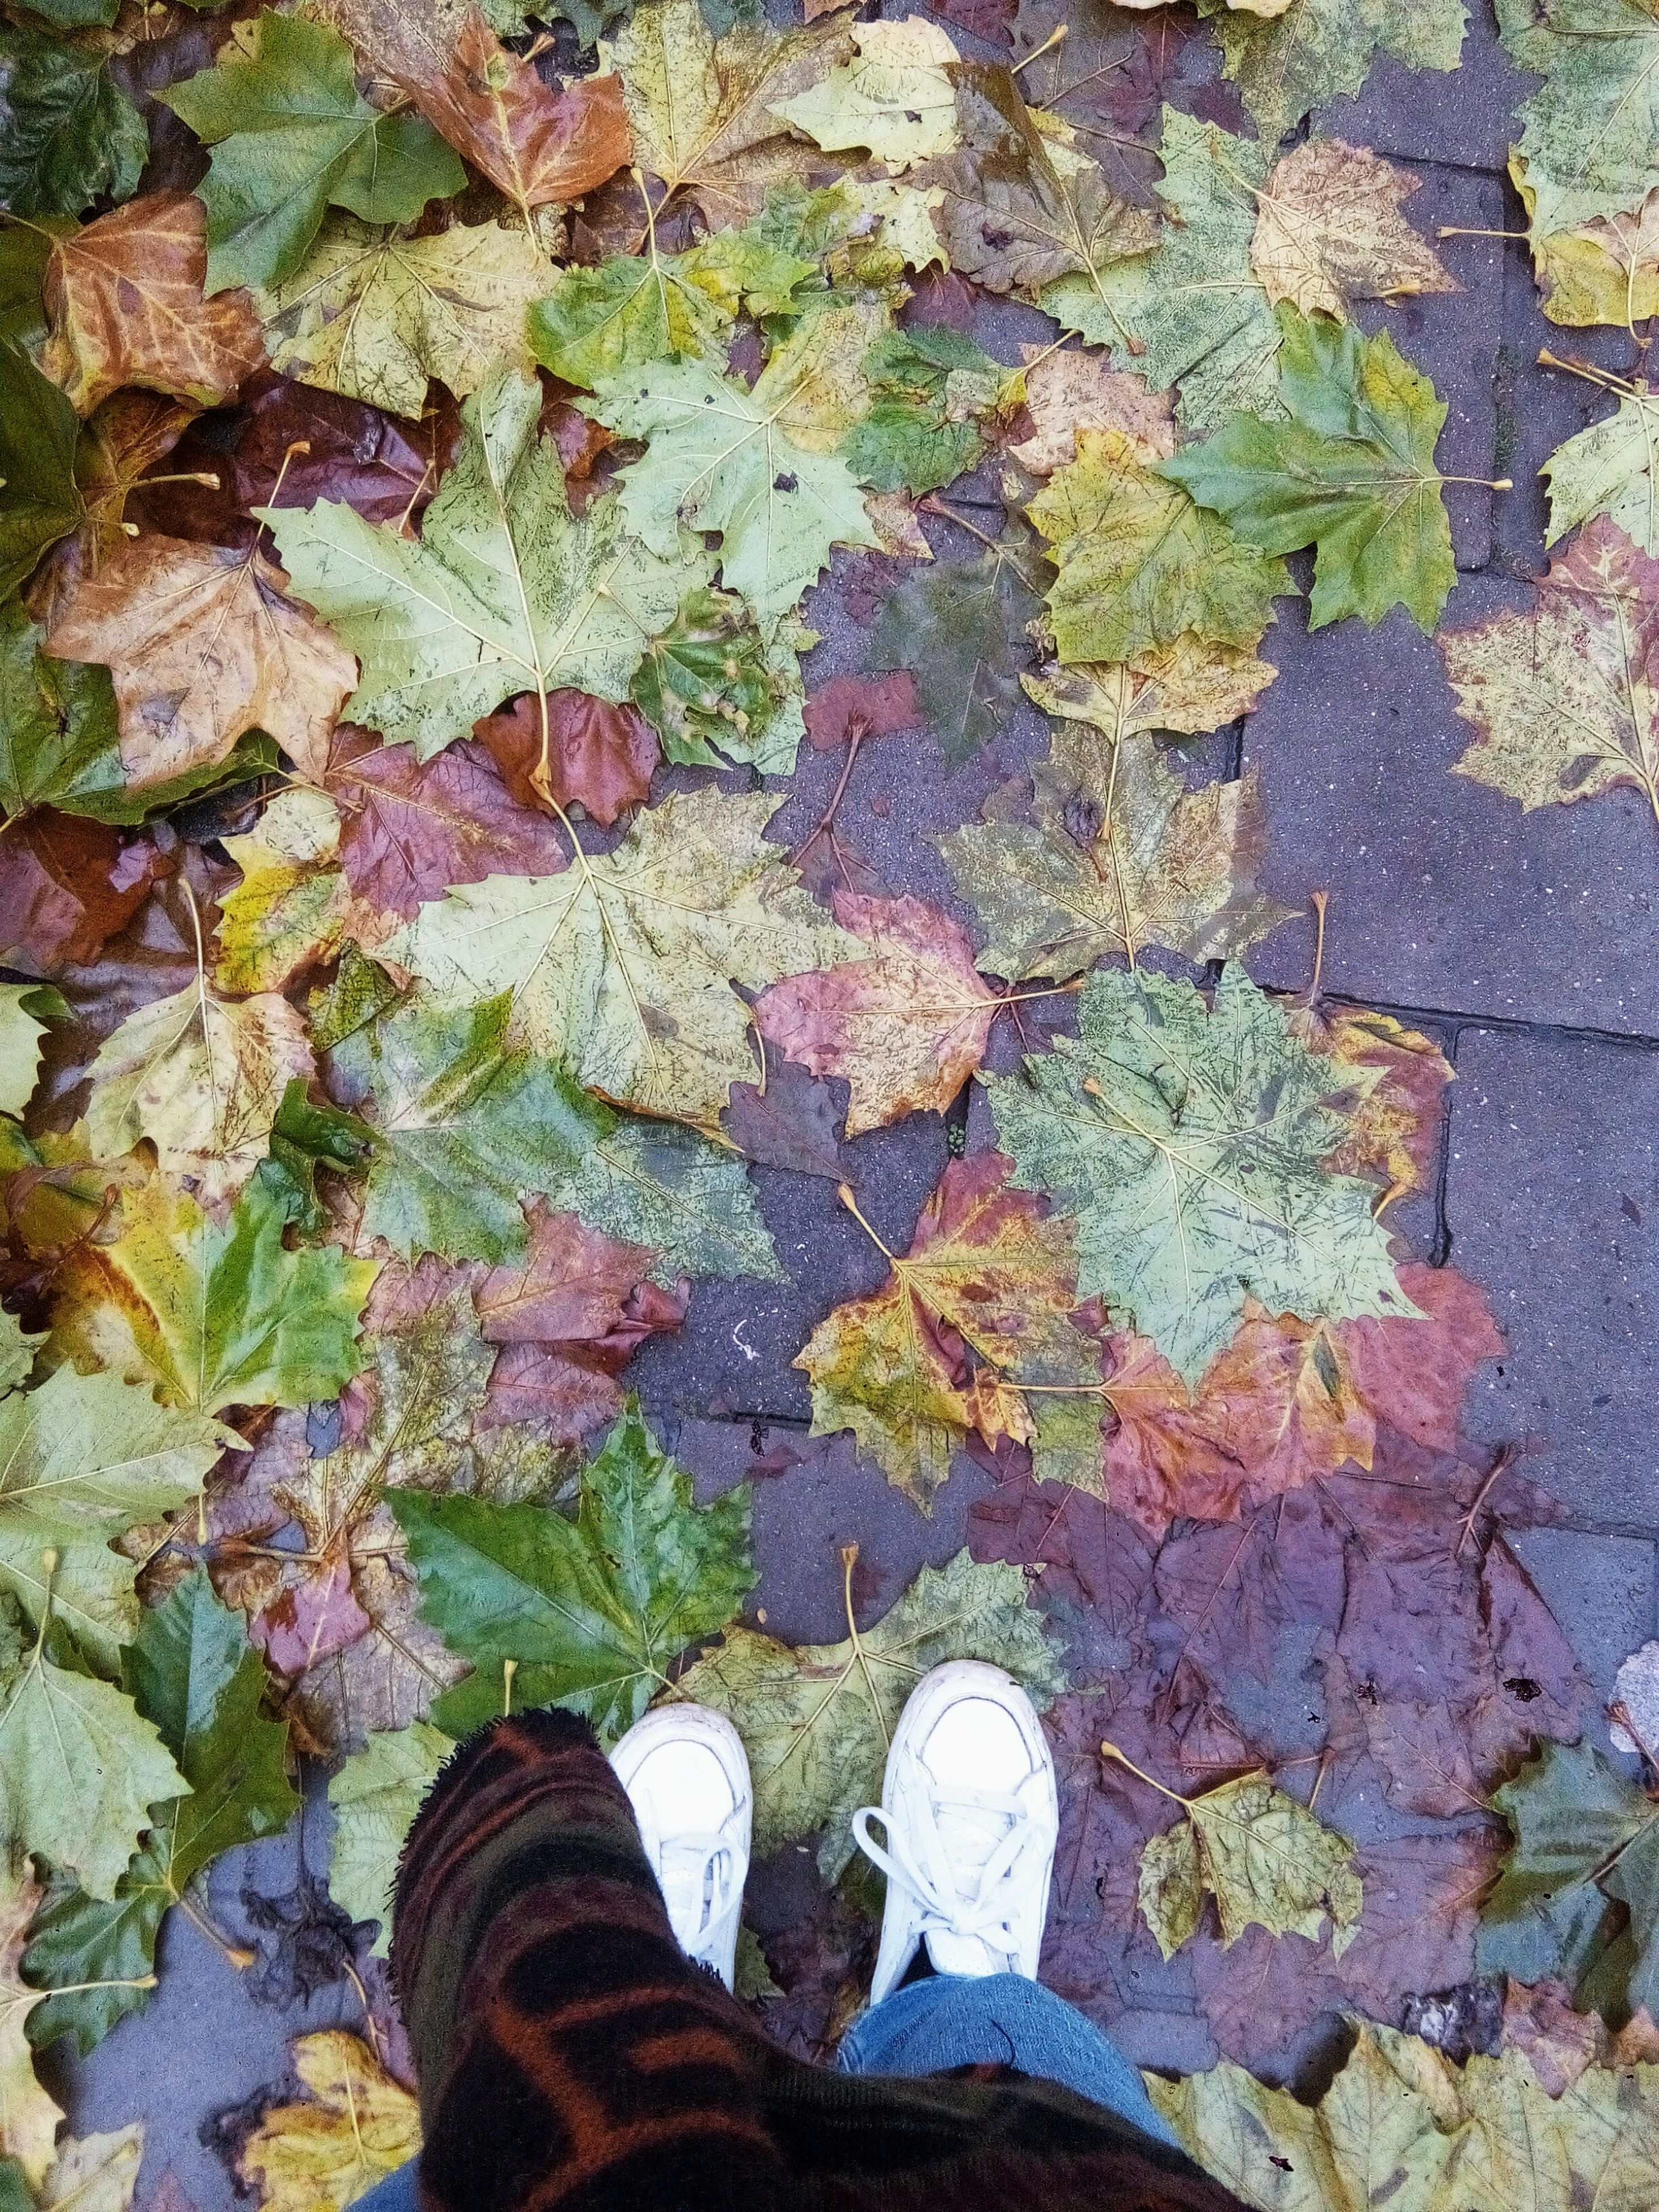 shoe, multi colored, low section, real people, street, lifestyles, human leg, personal perspective, high angle view, standing, leaf, outdoors, one person, leisure activity, day, human body part, close-up, men, people